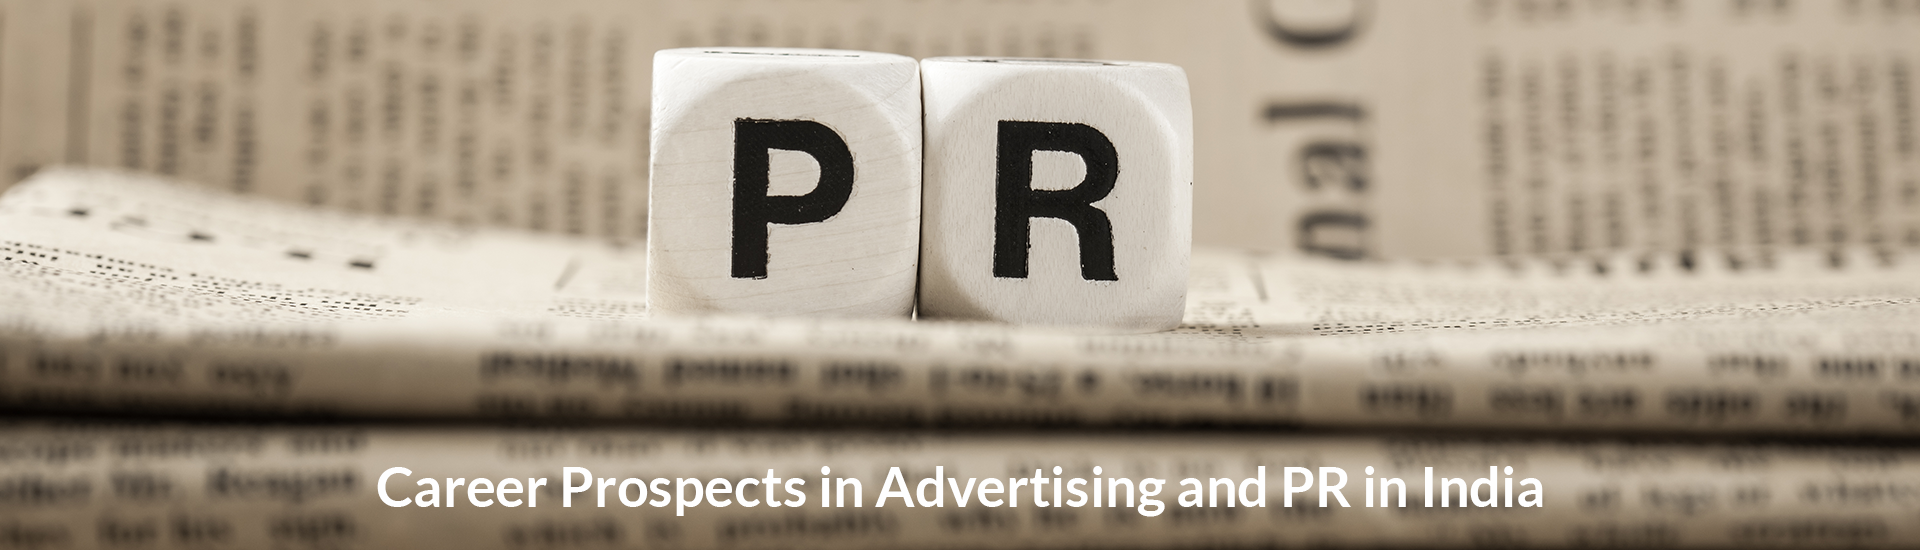 Career Prospects in Advertising and PR